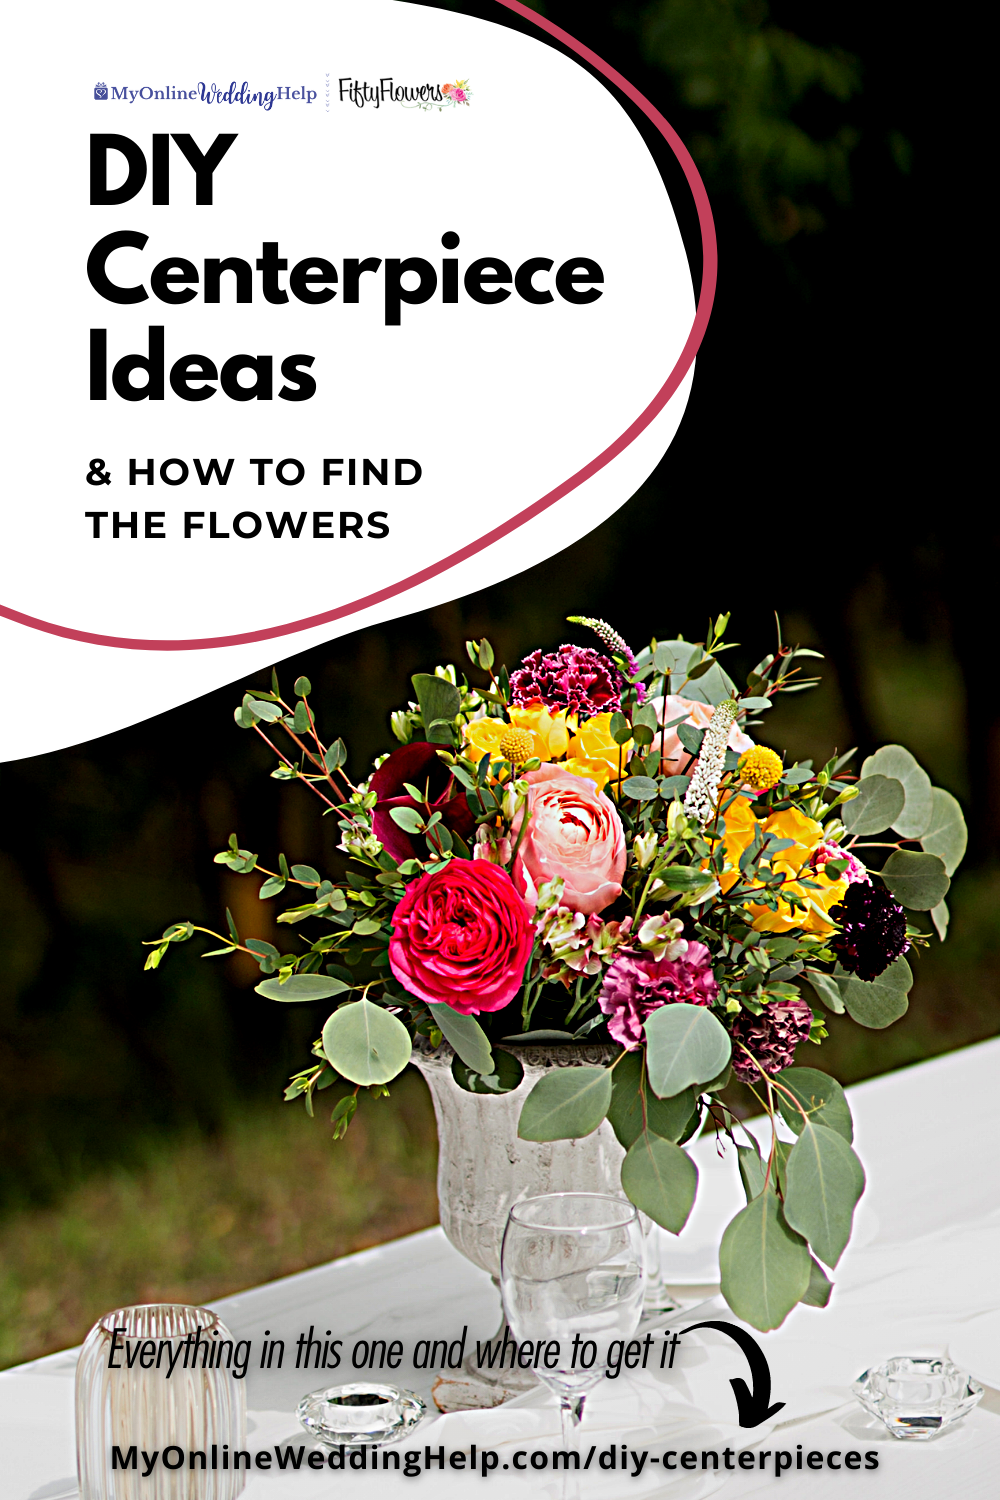 DIY Wedding Centerpieces with Flowers - My Online Wedding Help. Wedding  Planning Tips & Tools